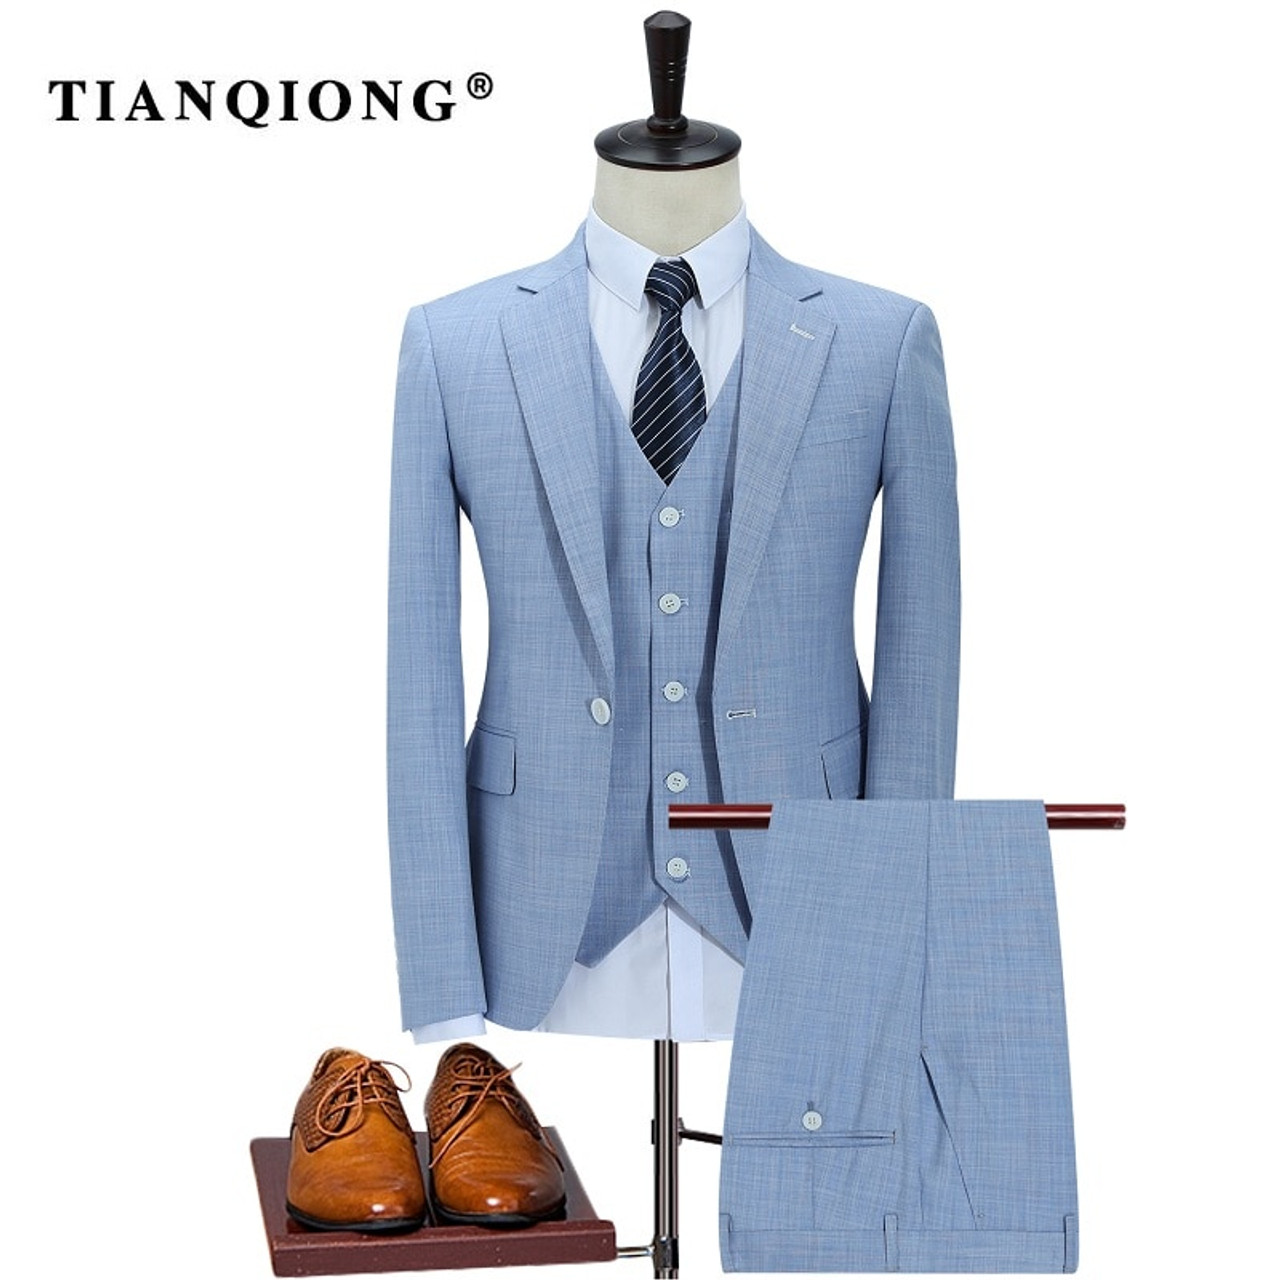 23a60c9ab4a TIAN QIONG 100% Polyester Sky Blue Suit Men Slim Fit Leisure Business  Wedding Dress Suits ...